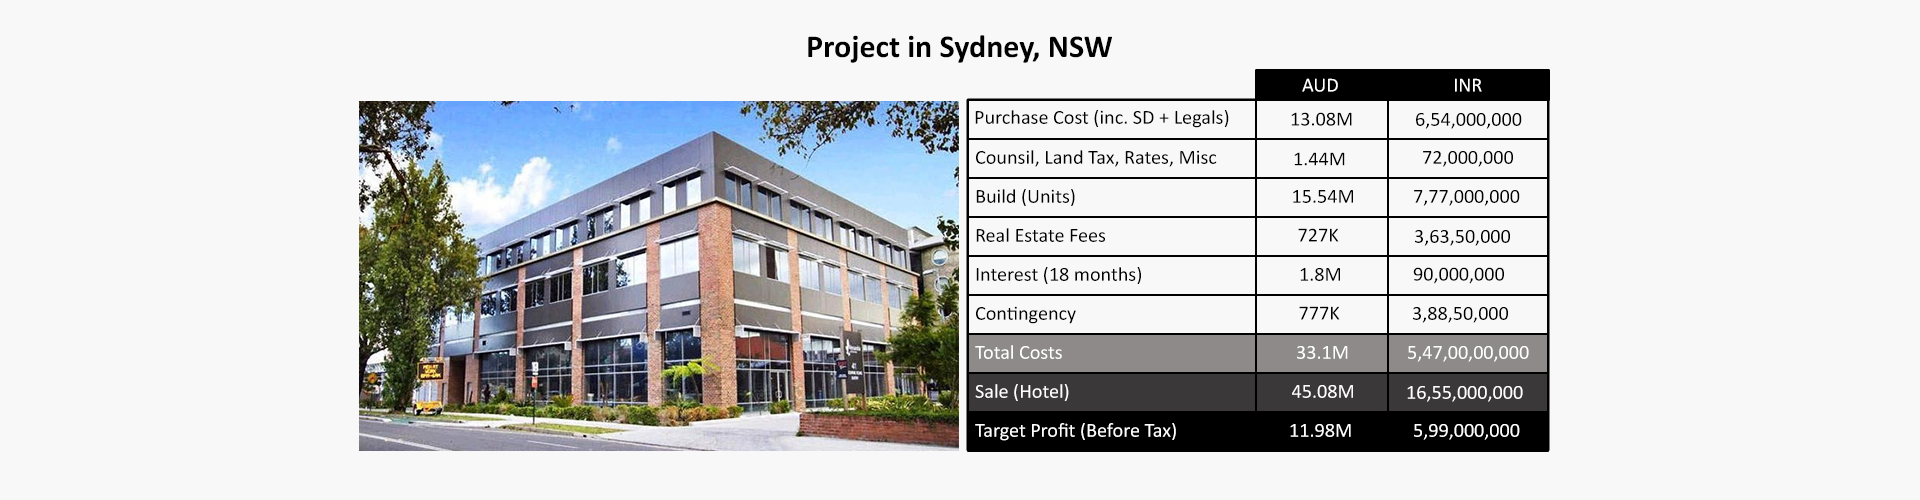 Project in Sydney